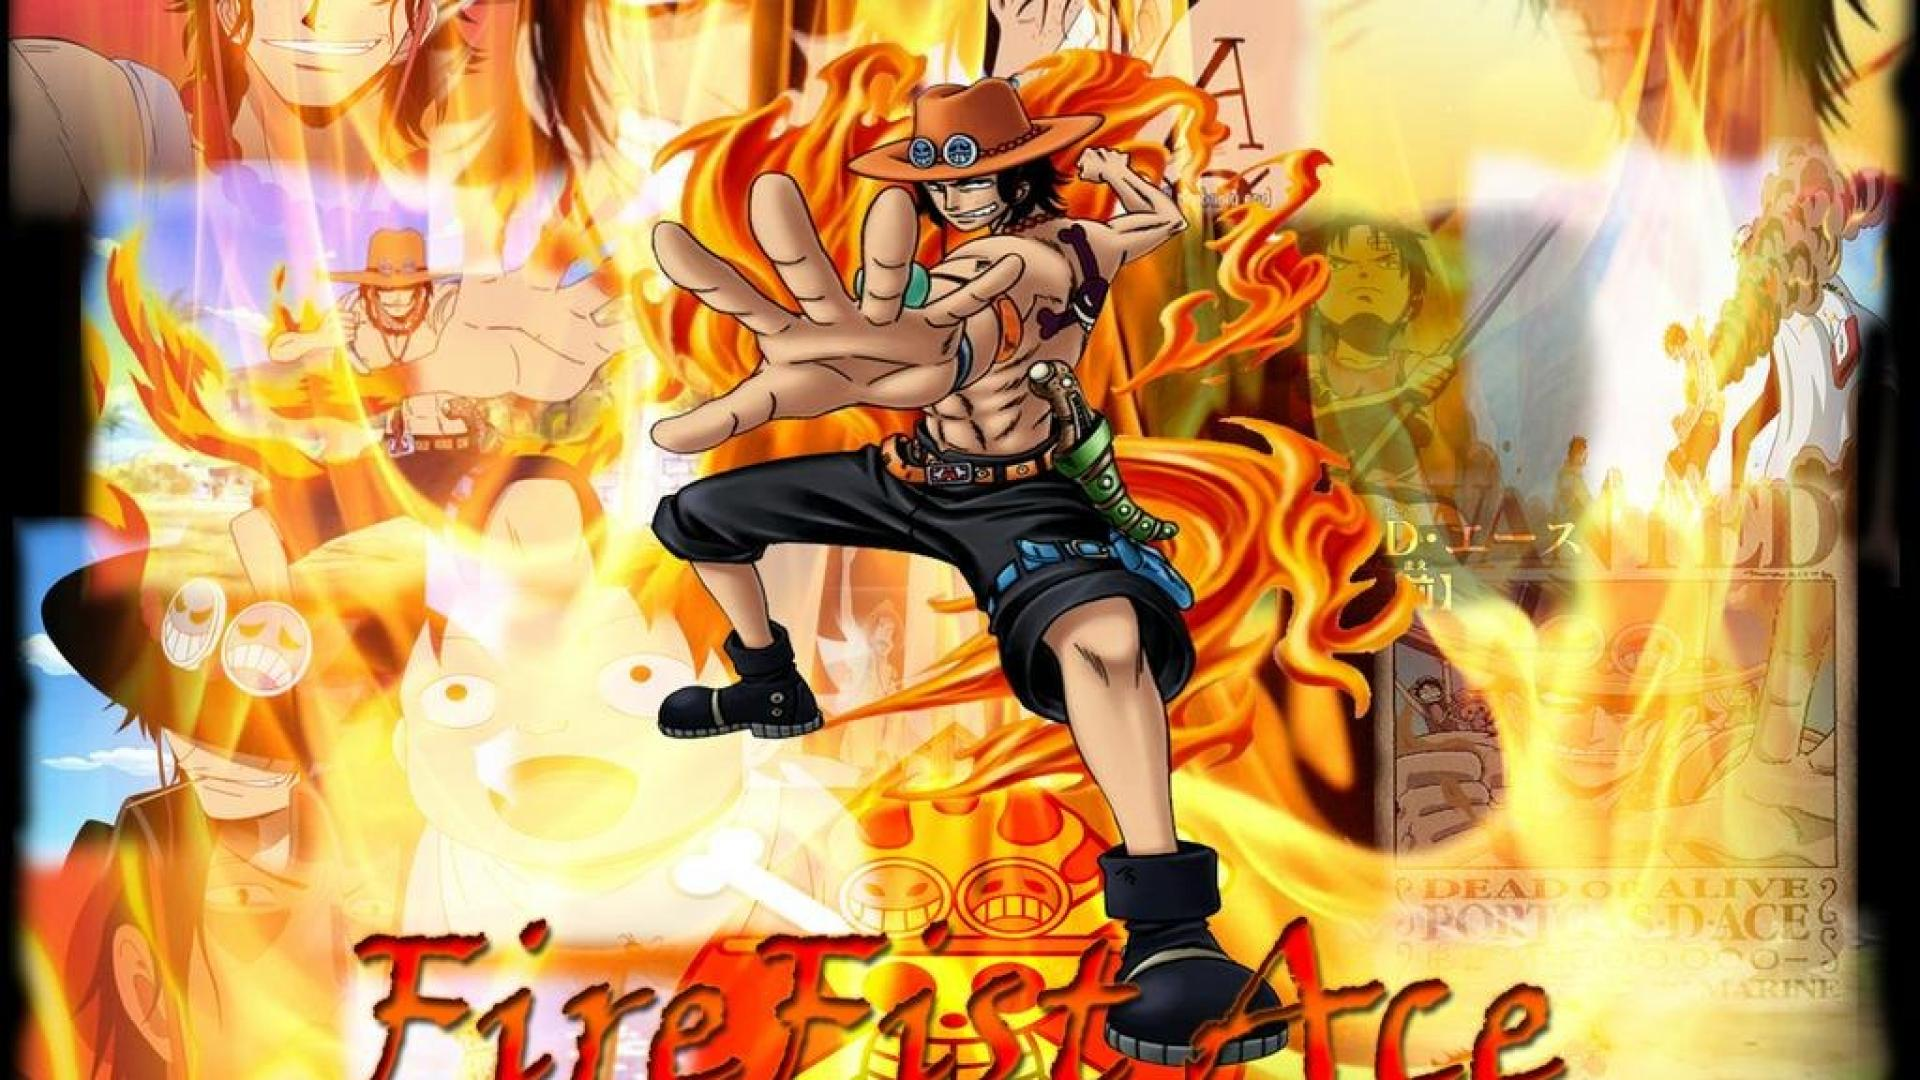 One Piece Ace Wallpaper Wallpapersafari